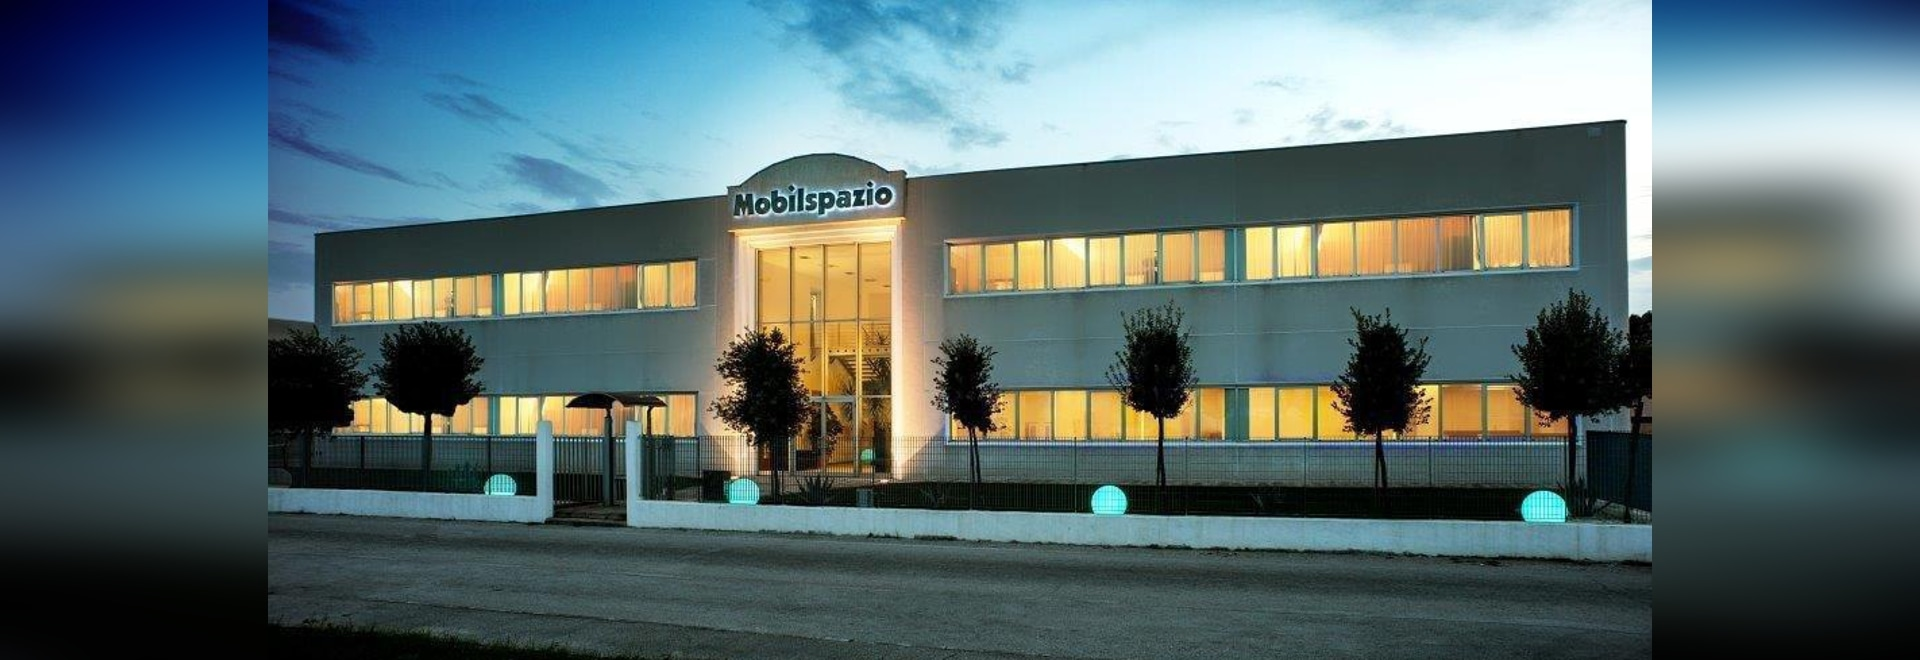 Mobilspazio Contract, furniture for hotels, residences, apartments, student accommodation